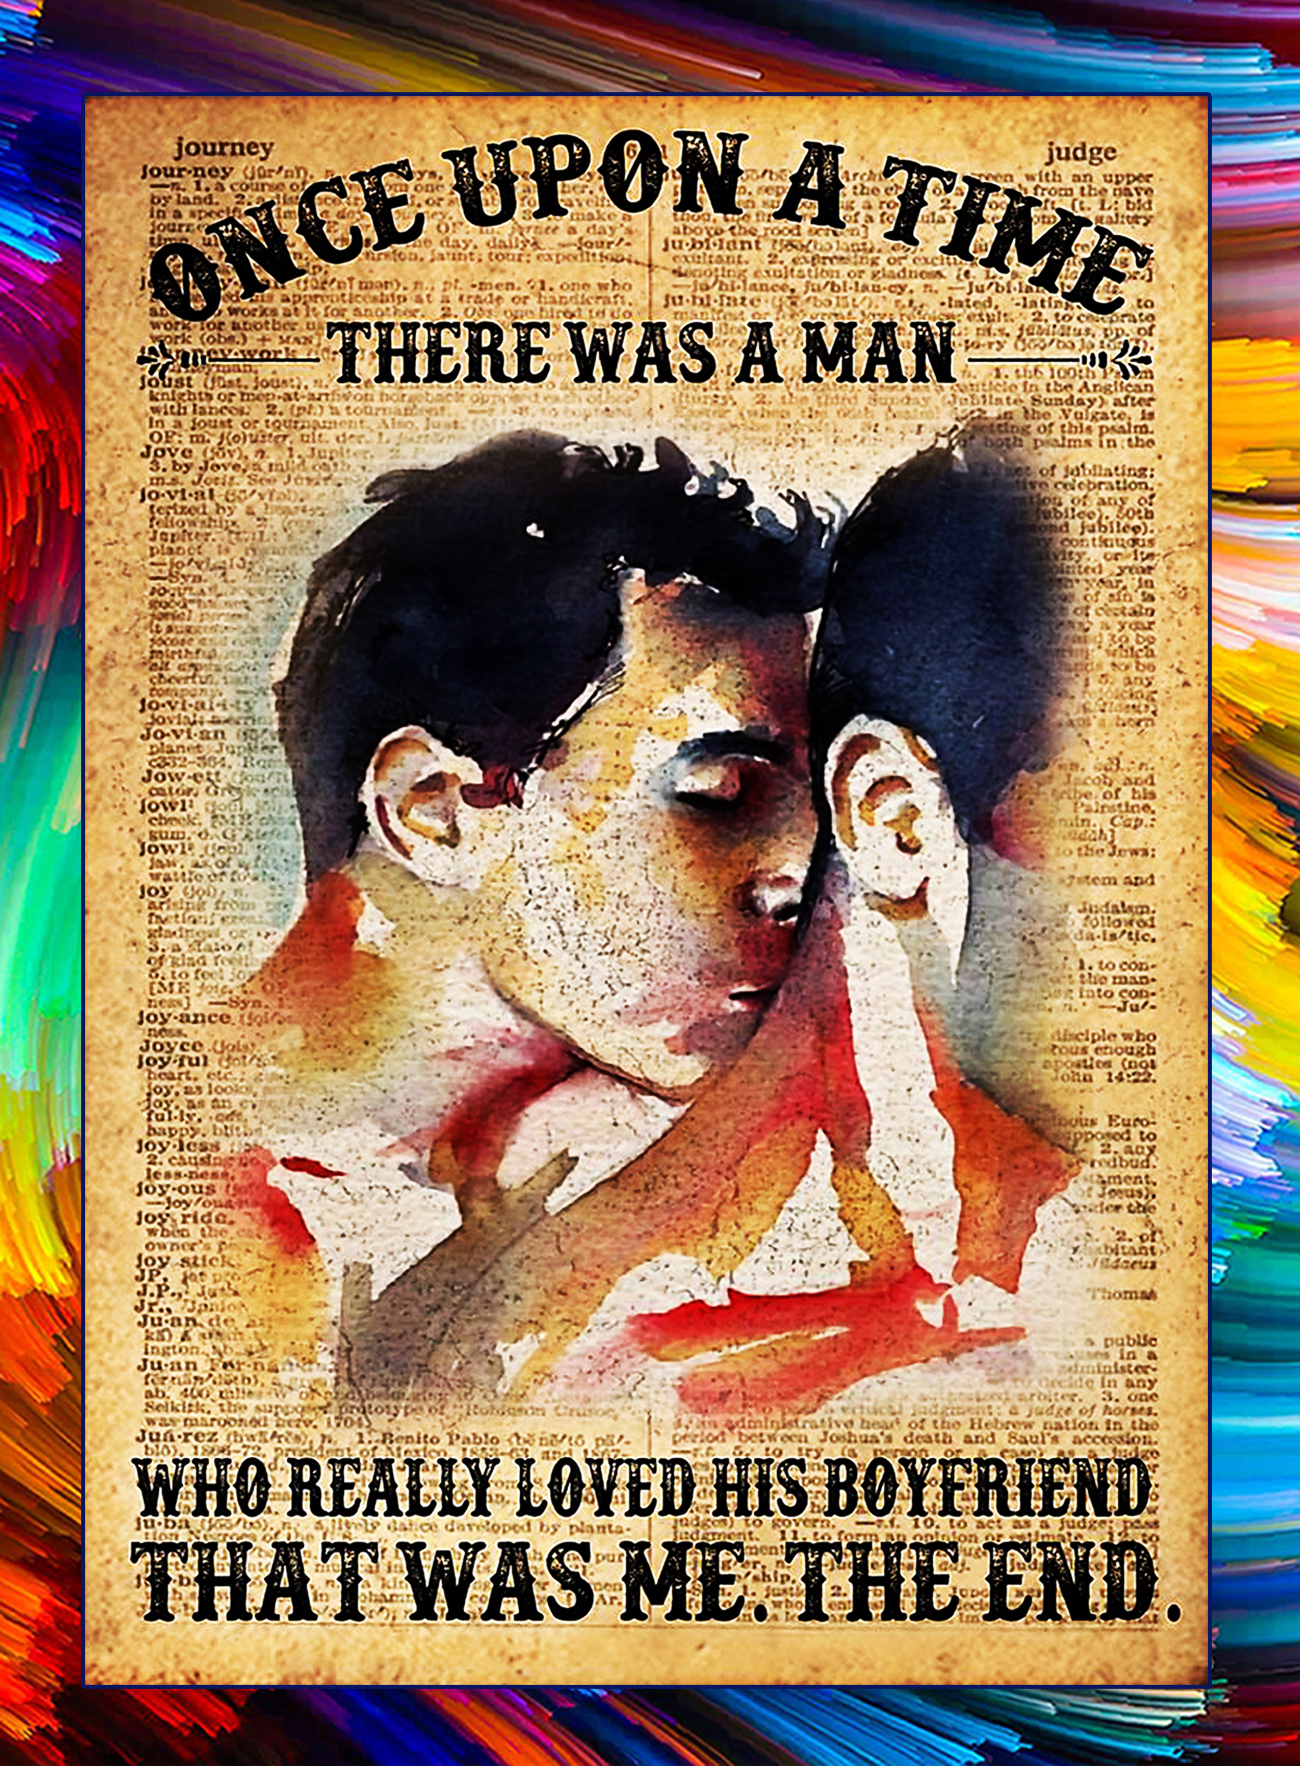 There was a man who really loved his boyfriend lgbt pride poster - A1